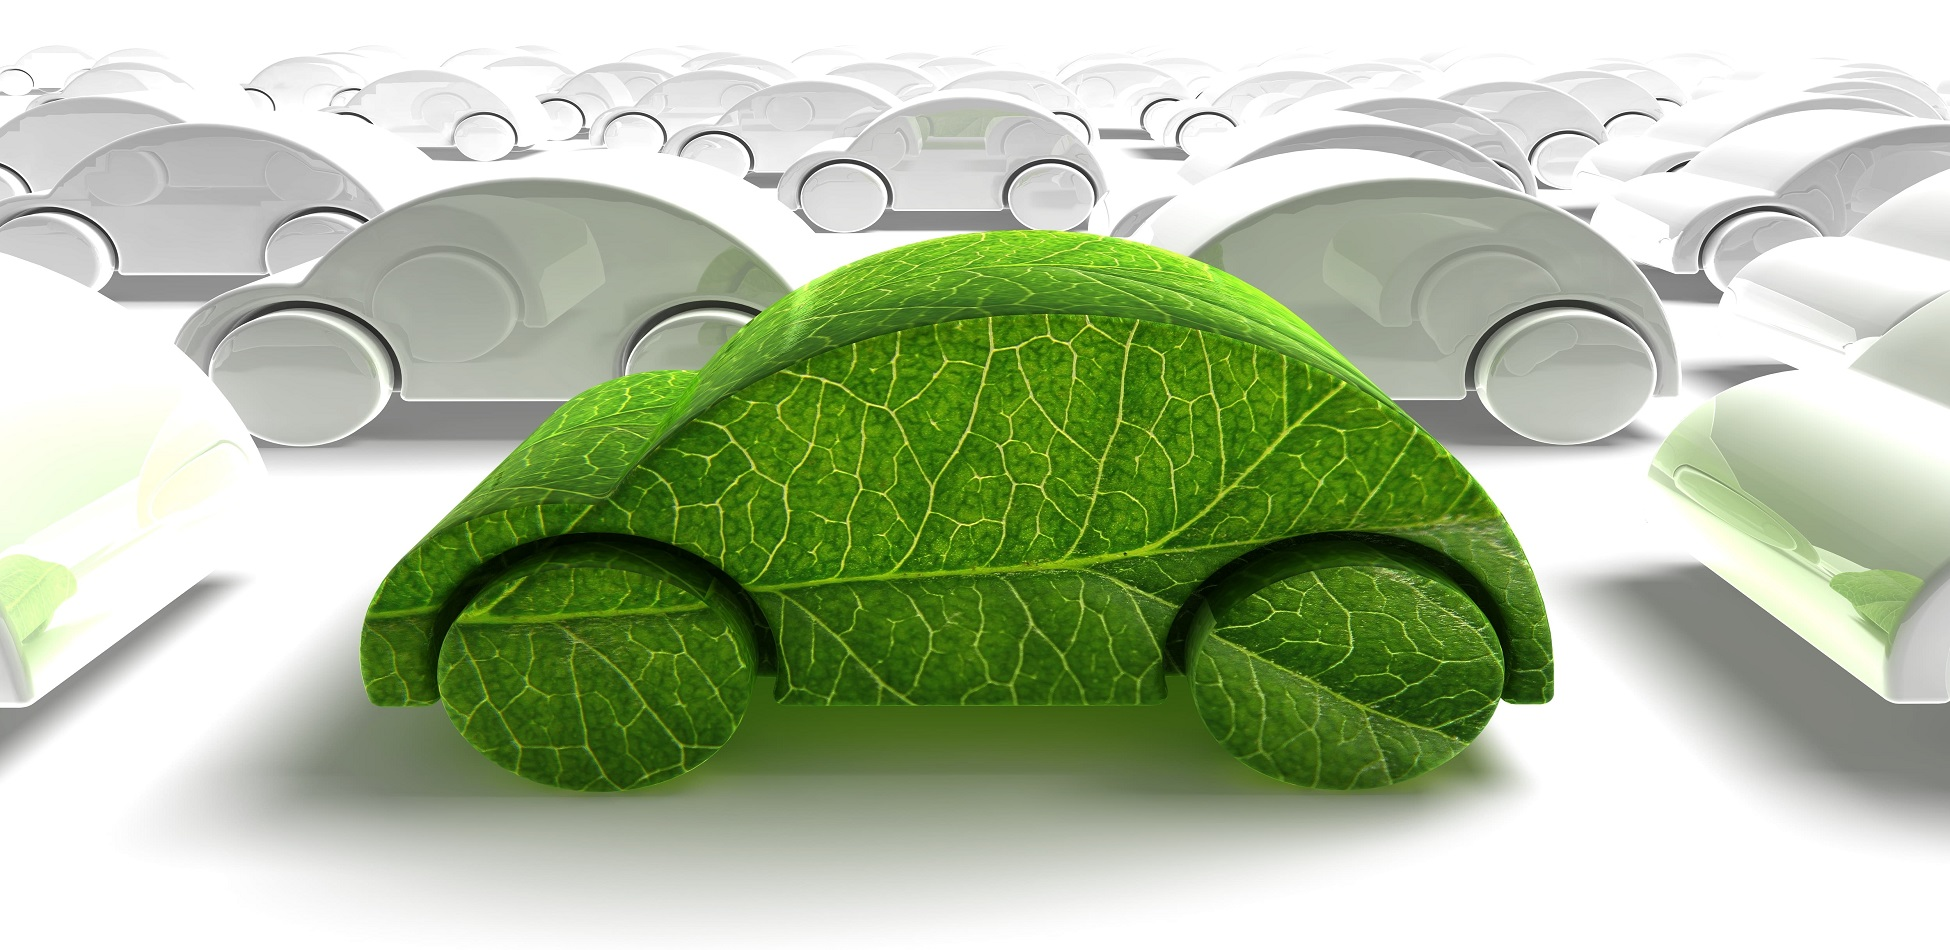 Electric cars and energy transition – is there a glitch?